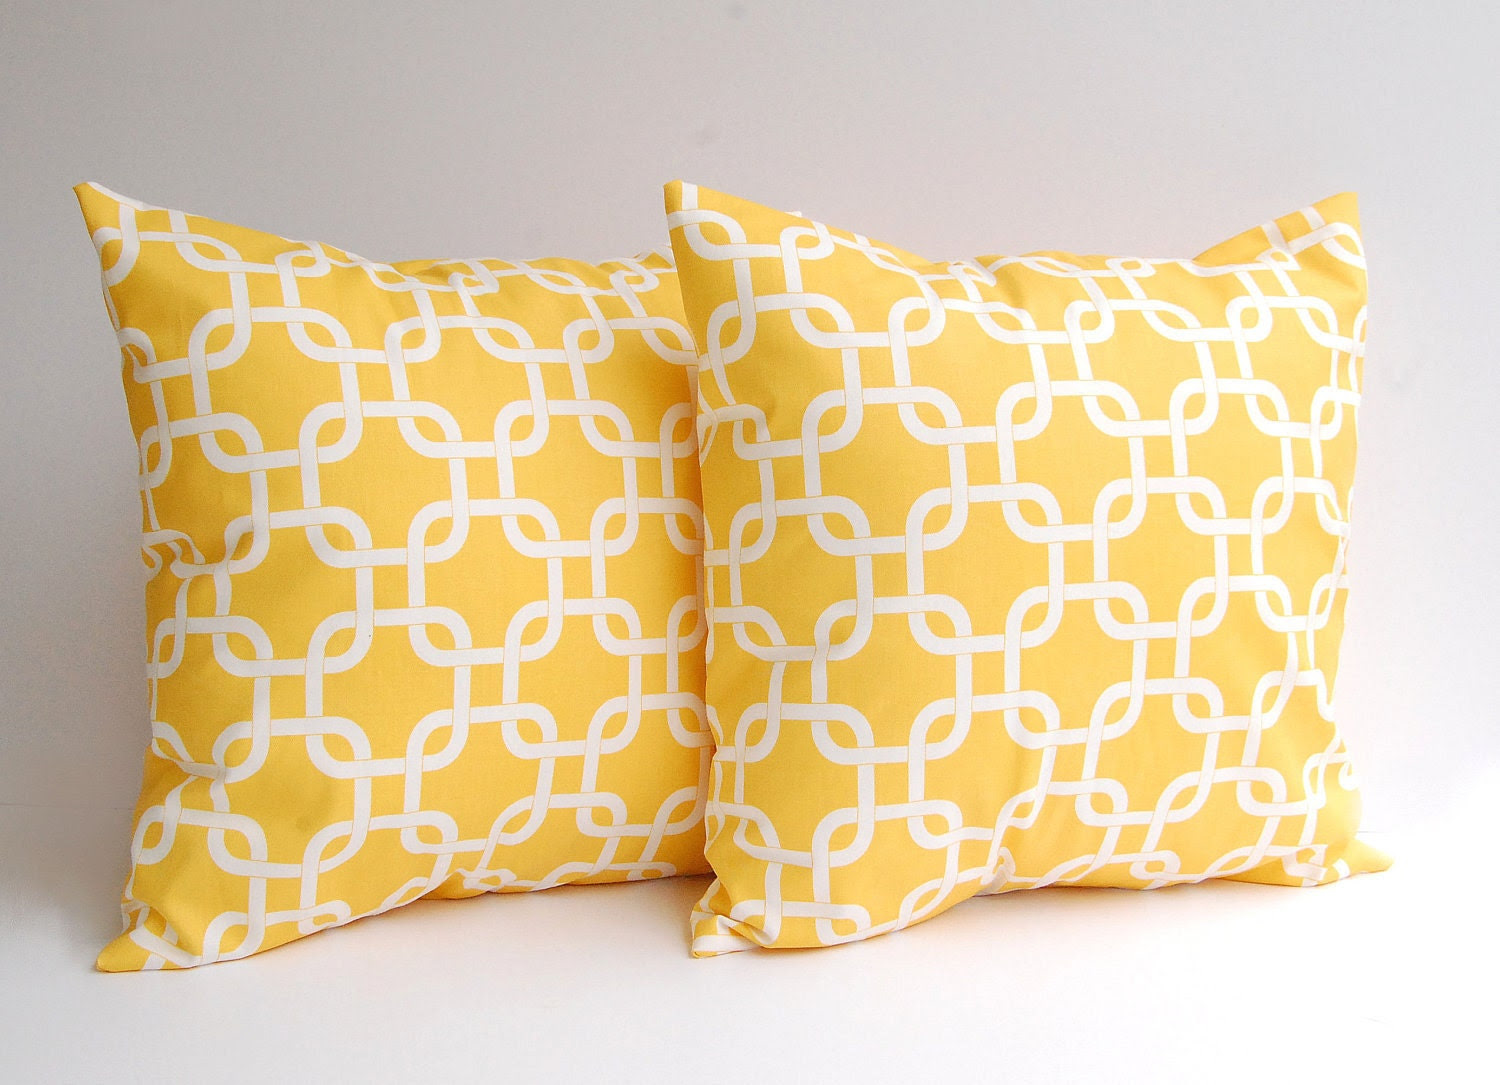 Yellow throw pillows set of two 18 x 18 inches by ThePillowPeople